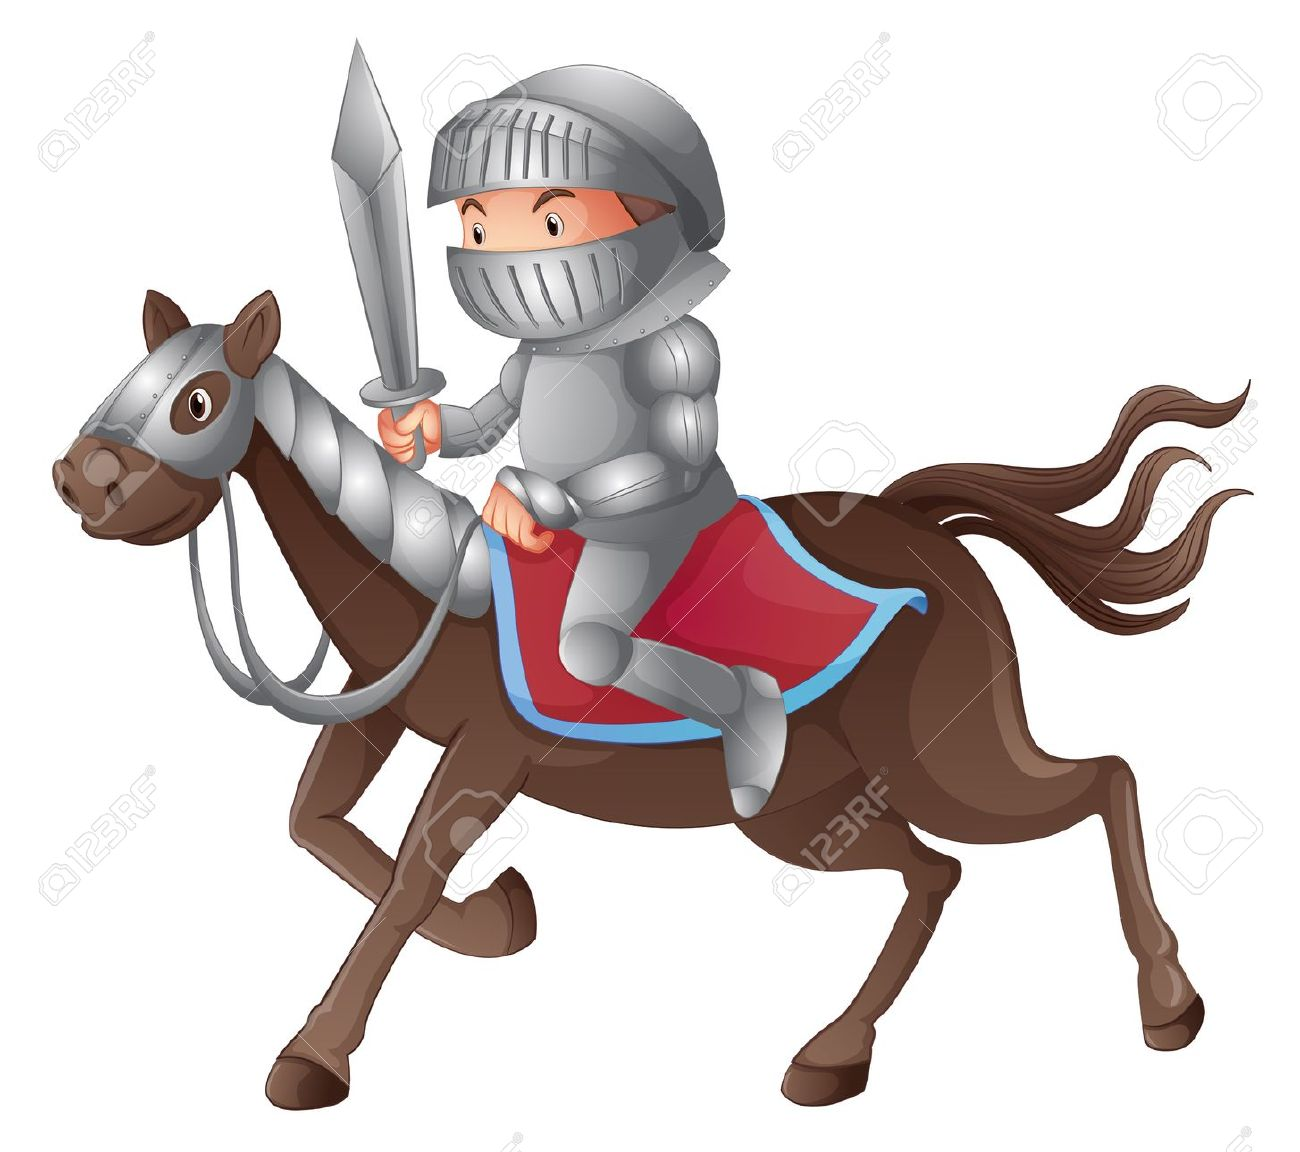 Knights On Horses Clipart.